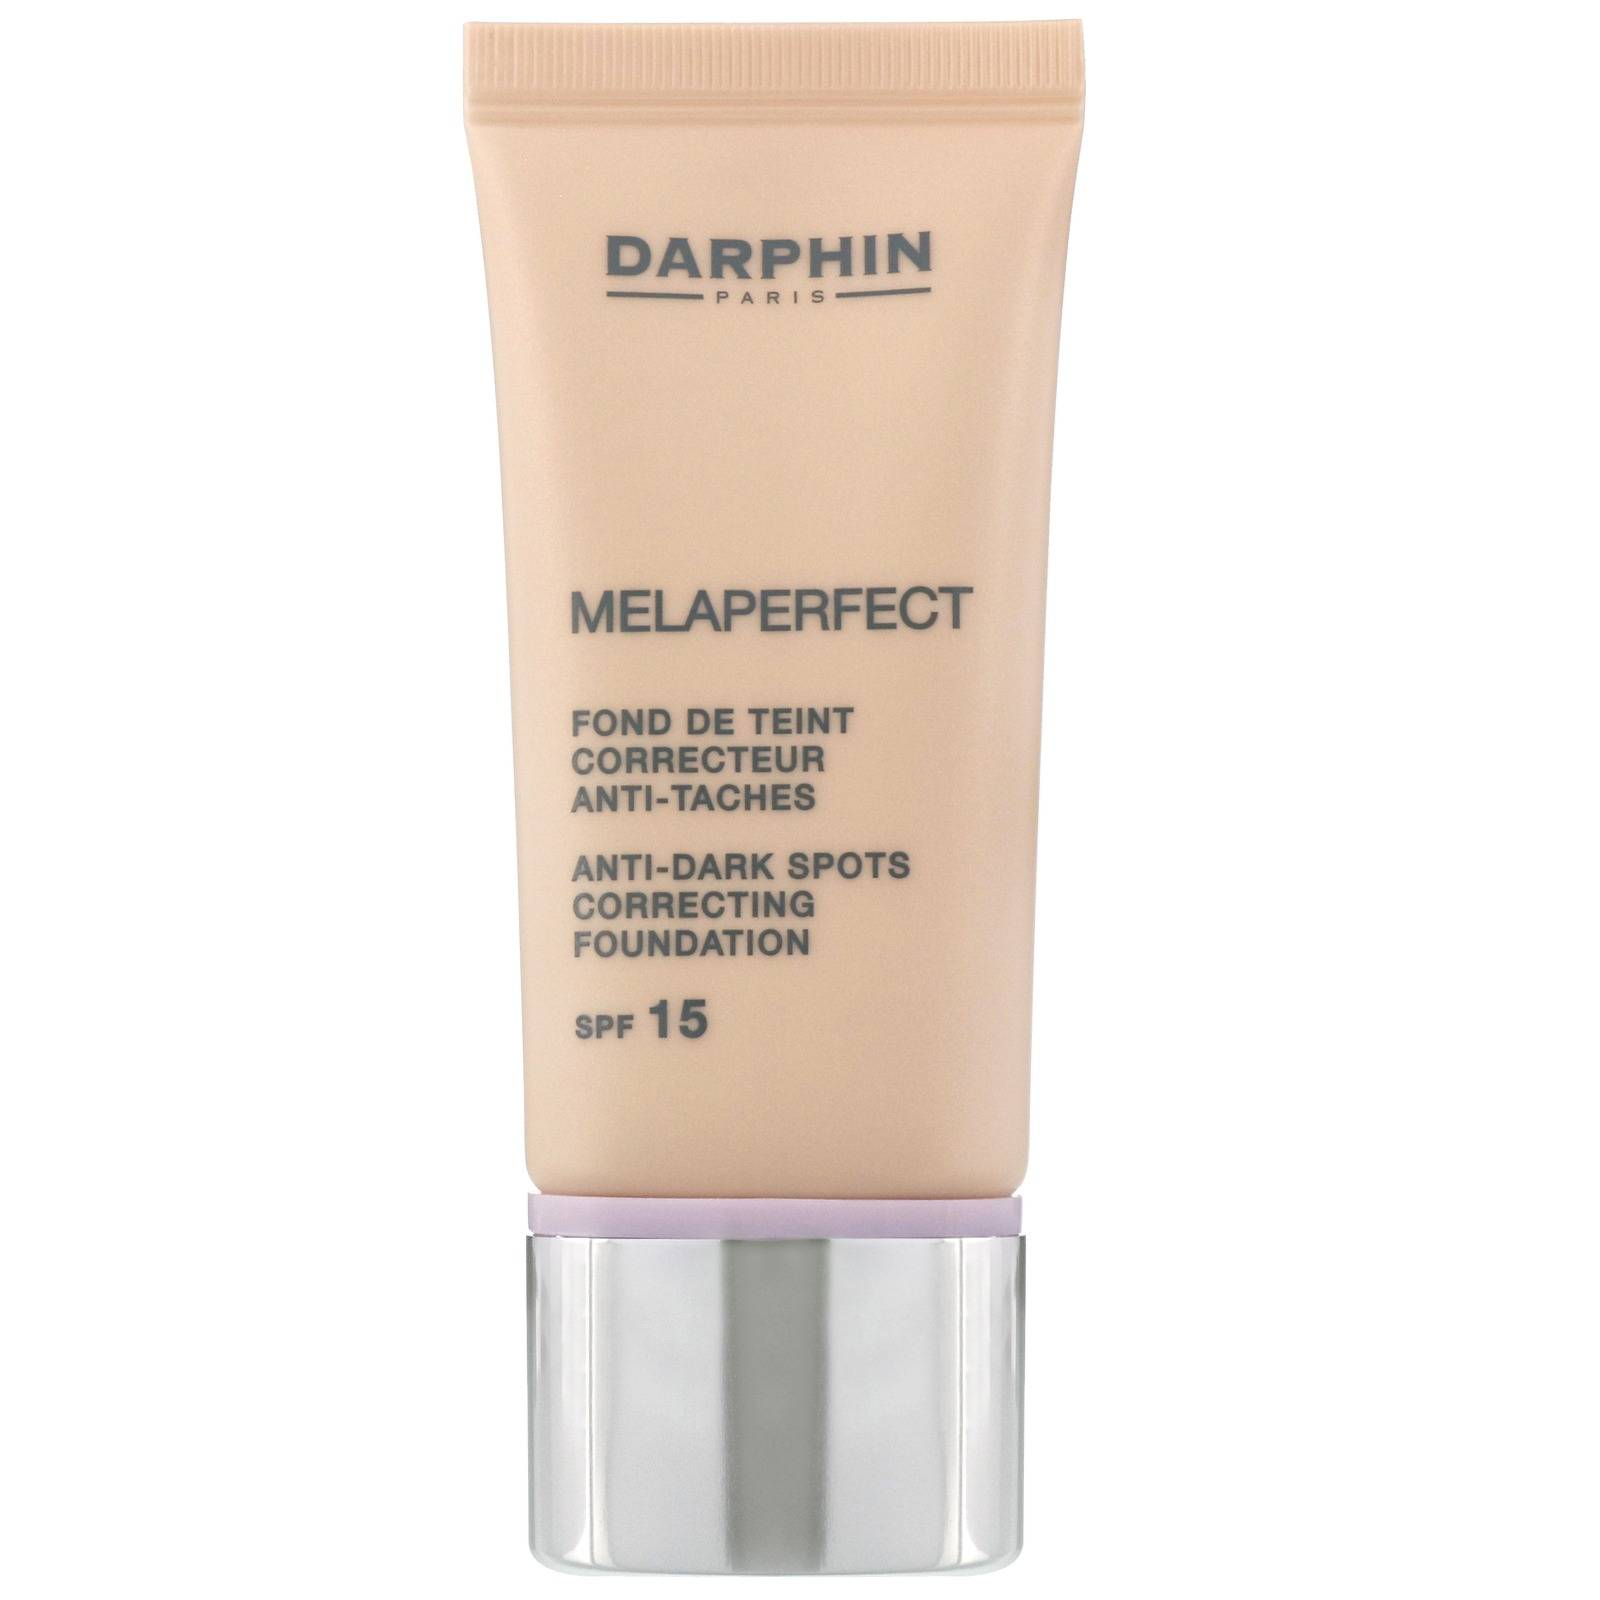 Darphin Melaperfect Anti-Dark Spots Correcting Foundation SPF15 01 Avorio 30ml